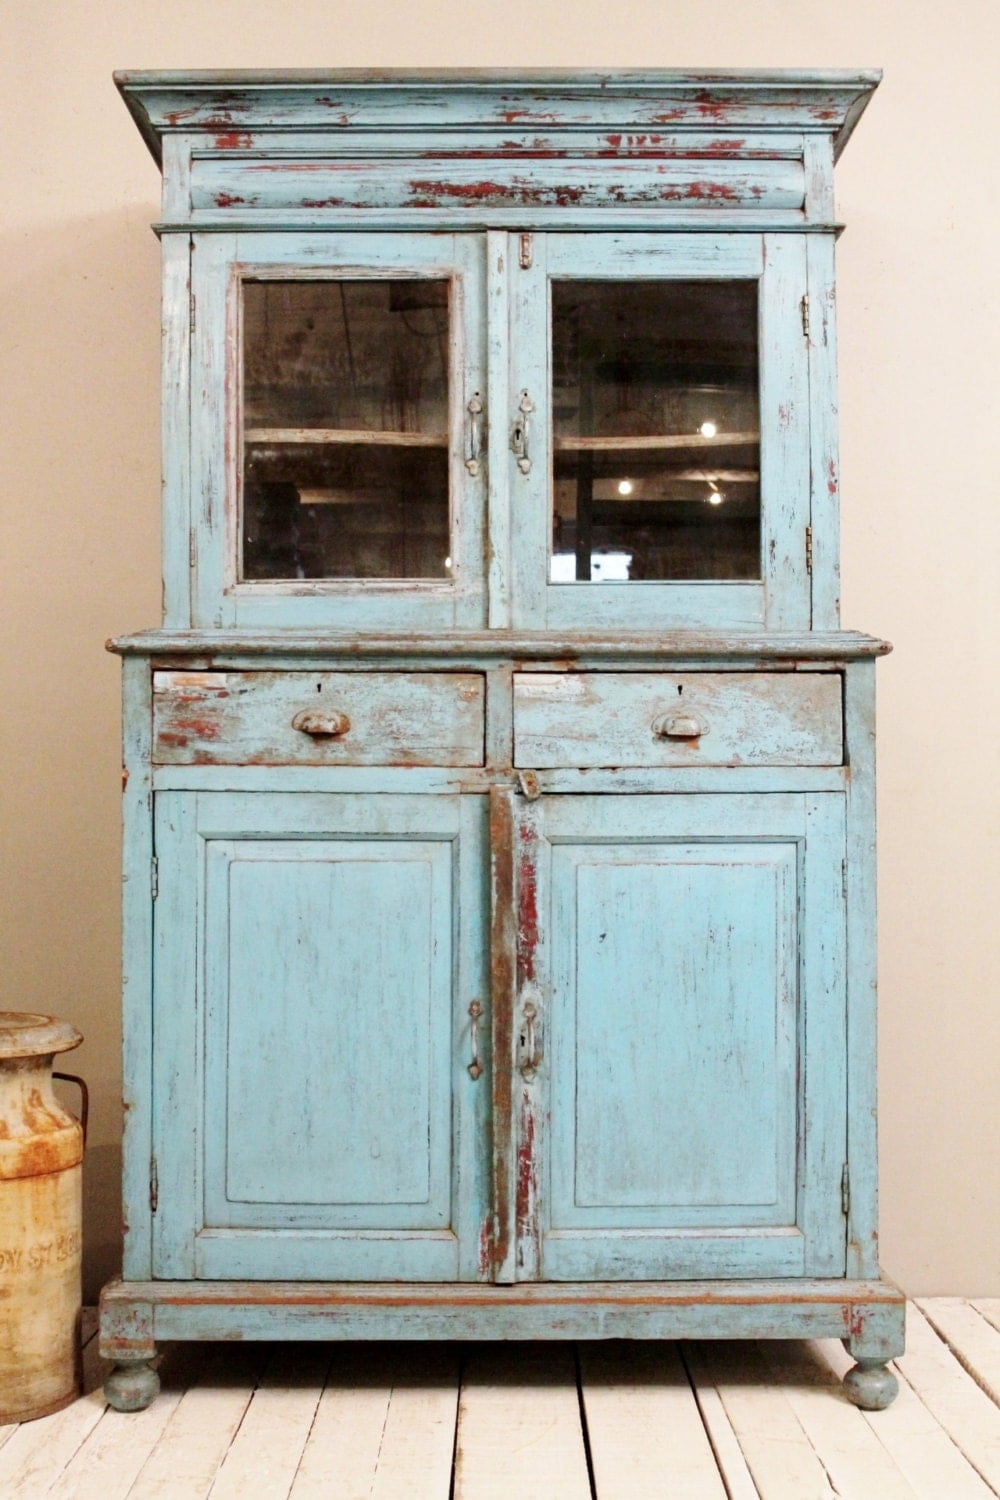 Antique kitchen cupboard - Antique Kitchen Cupboard With Flour Bin Furniture Info